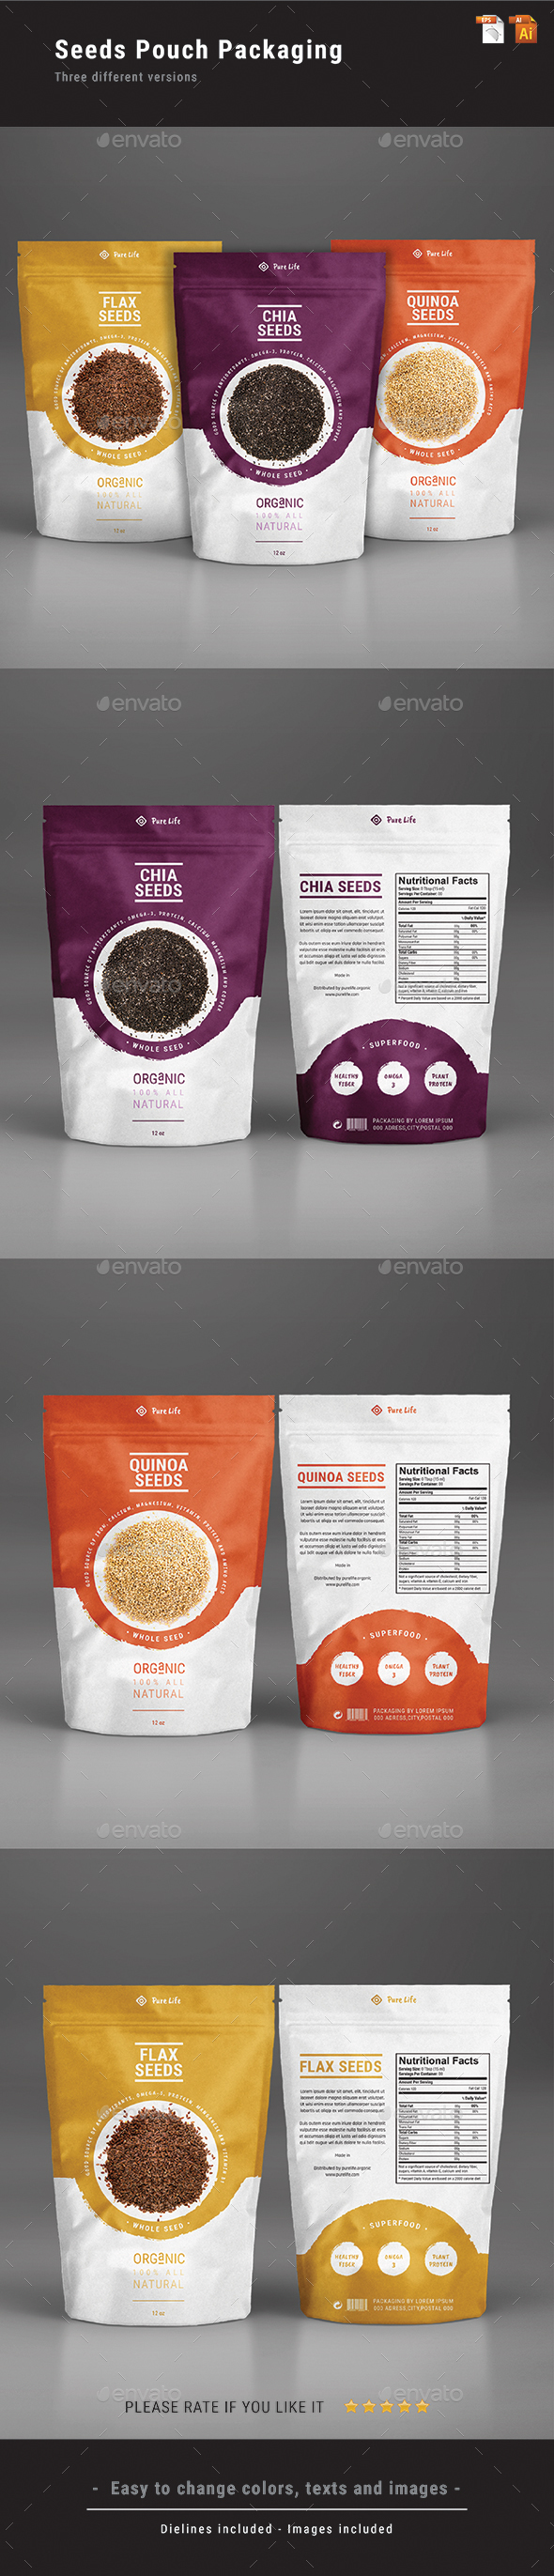 GraphicRiver Seeds Pouch Packaging 21079067